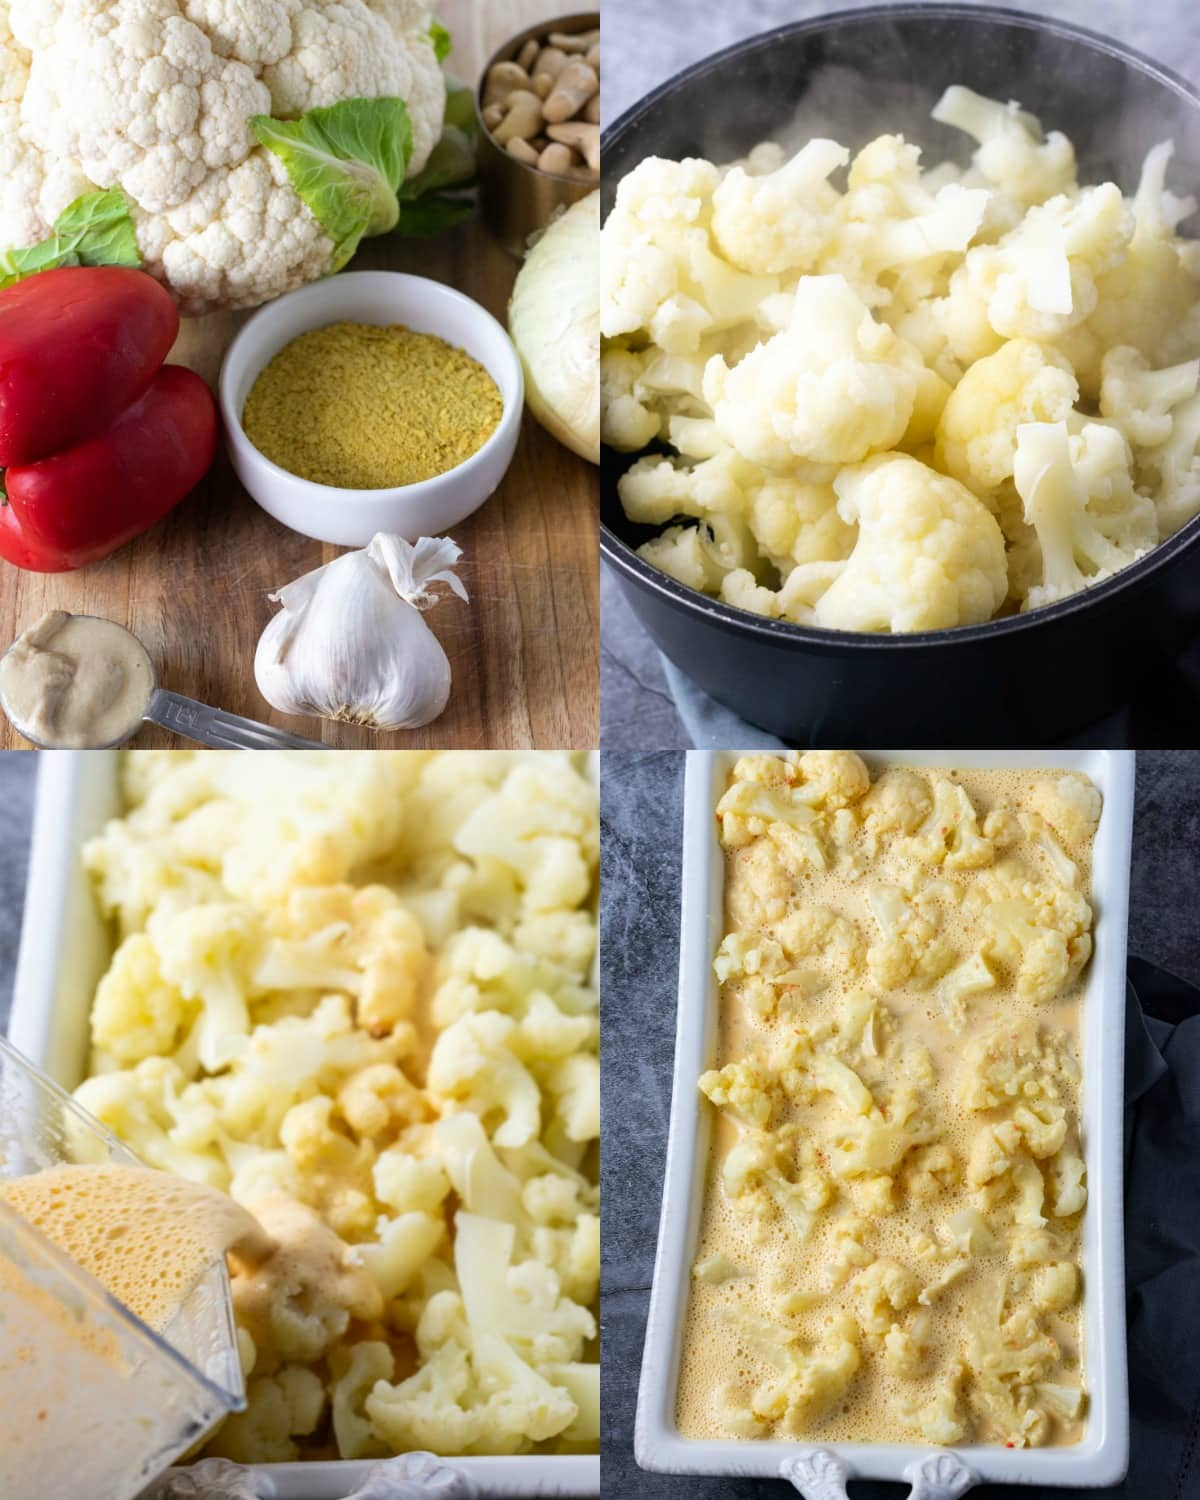 Vegan cauliflower casserole steps